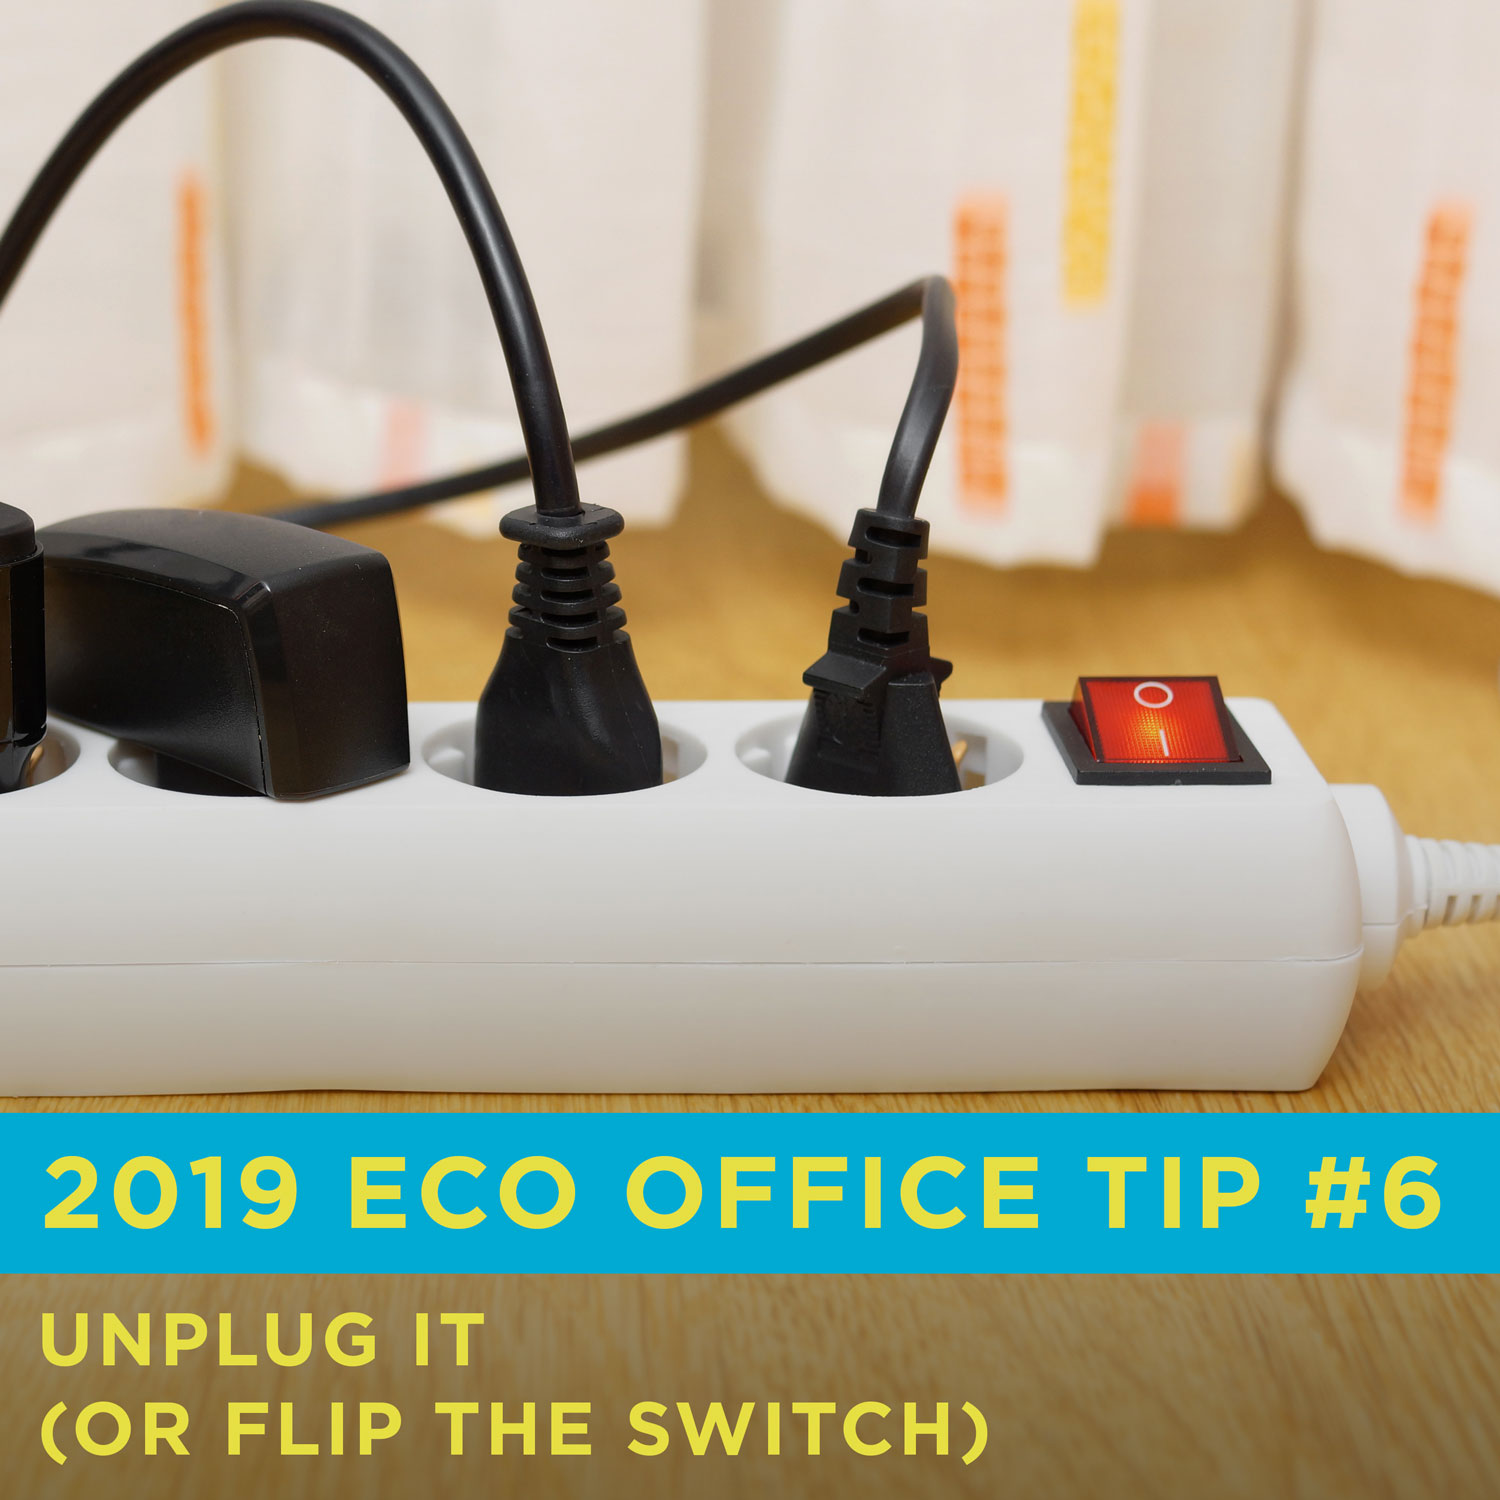 Eco Friendly Office Tip 6: Unplug it (or flip the switch)